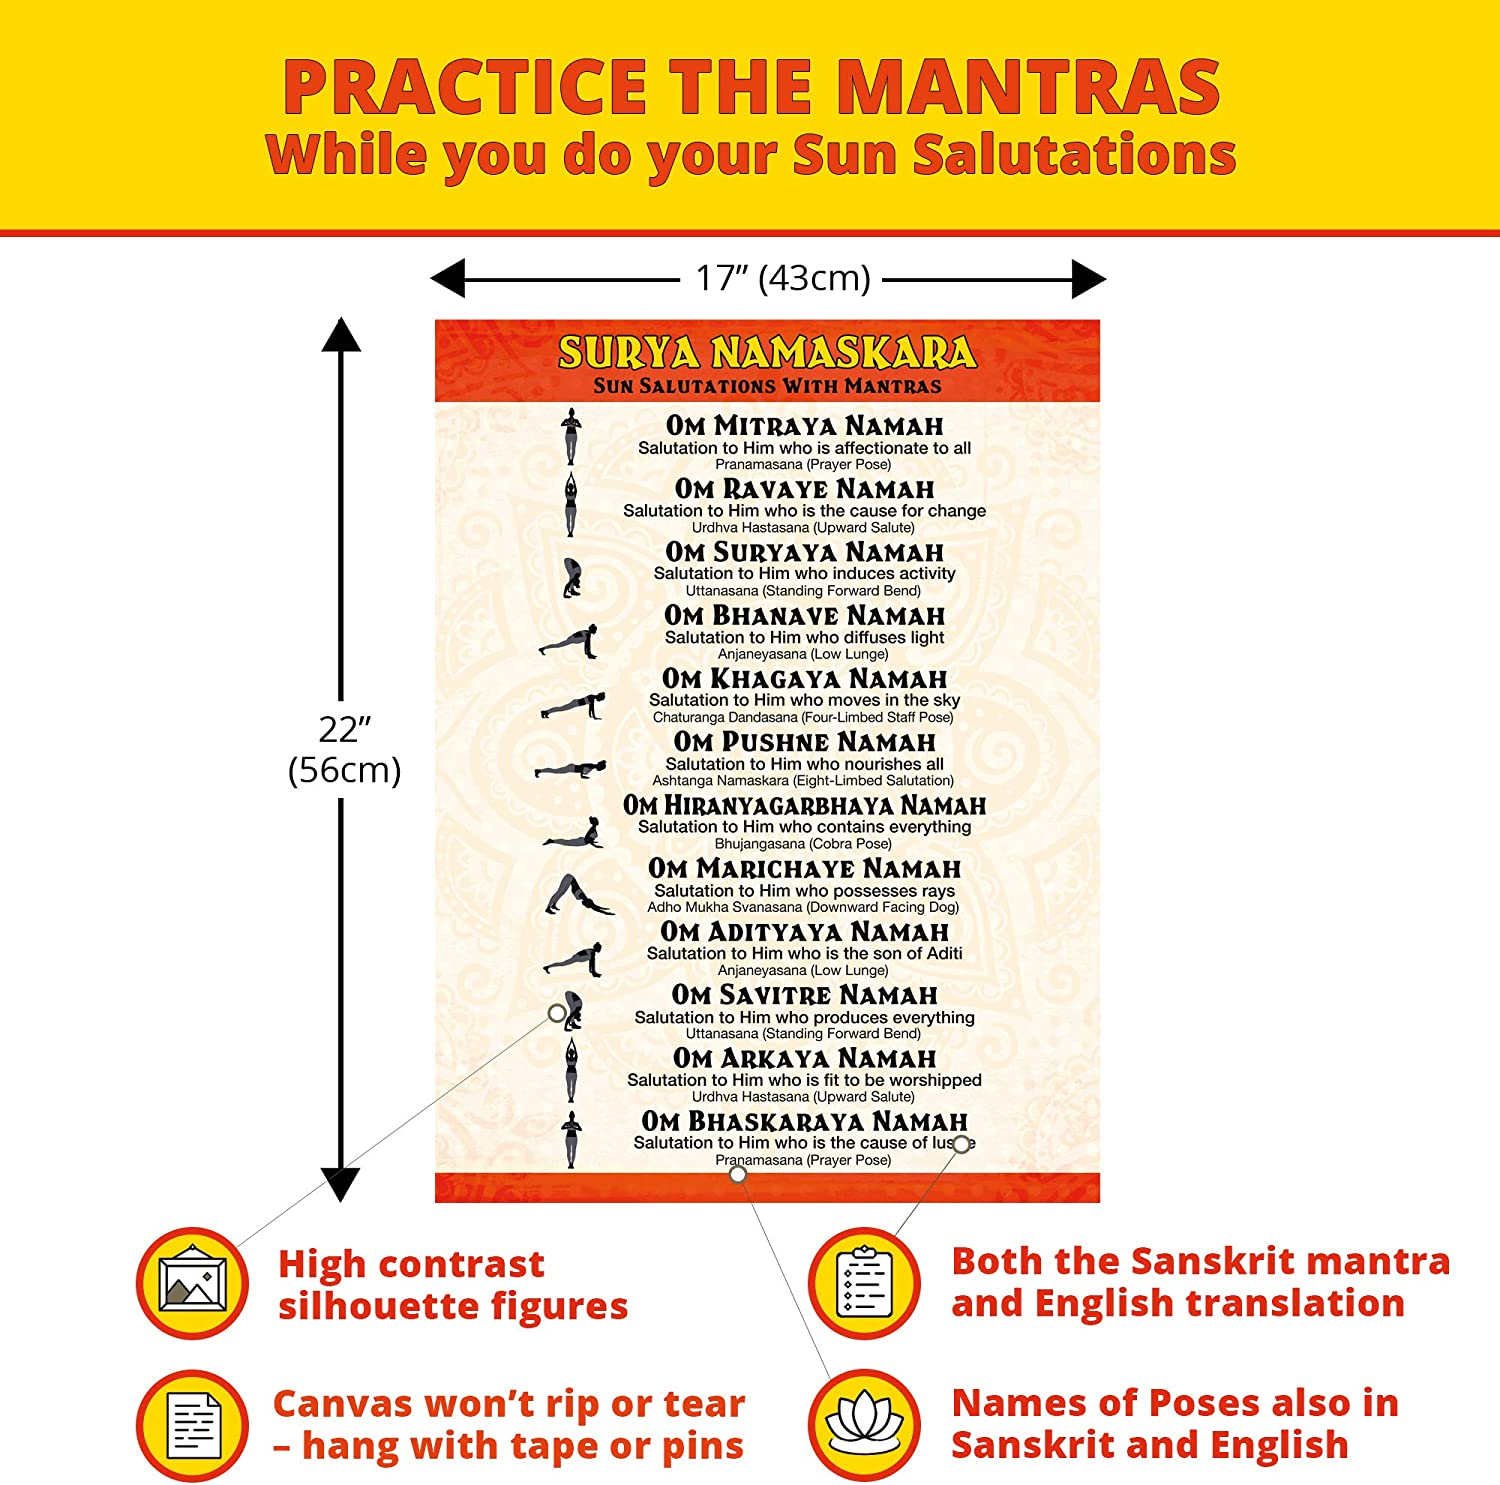 The Mindful Word Surya Namaskara Yoga Poster   Canvas Fabric   Sun  Salutations Poster with Yoga Poses and Sanskrit Mantras in a Chart   Looks  Great as ...